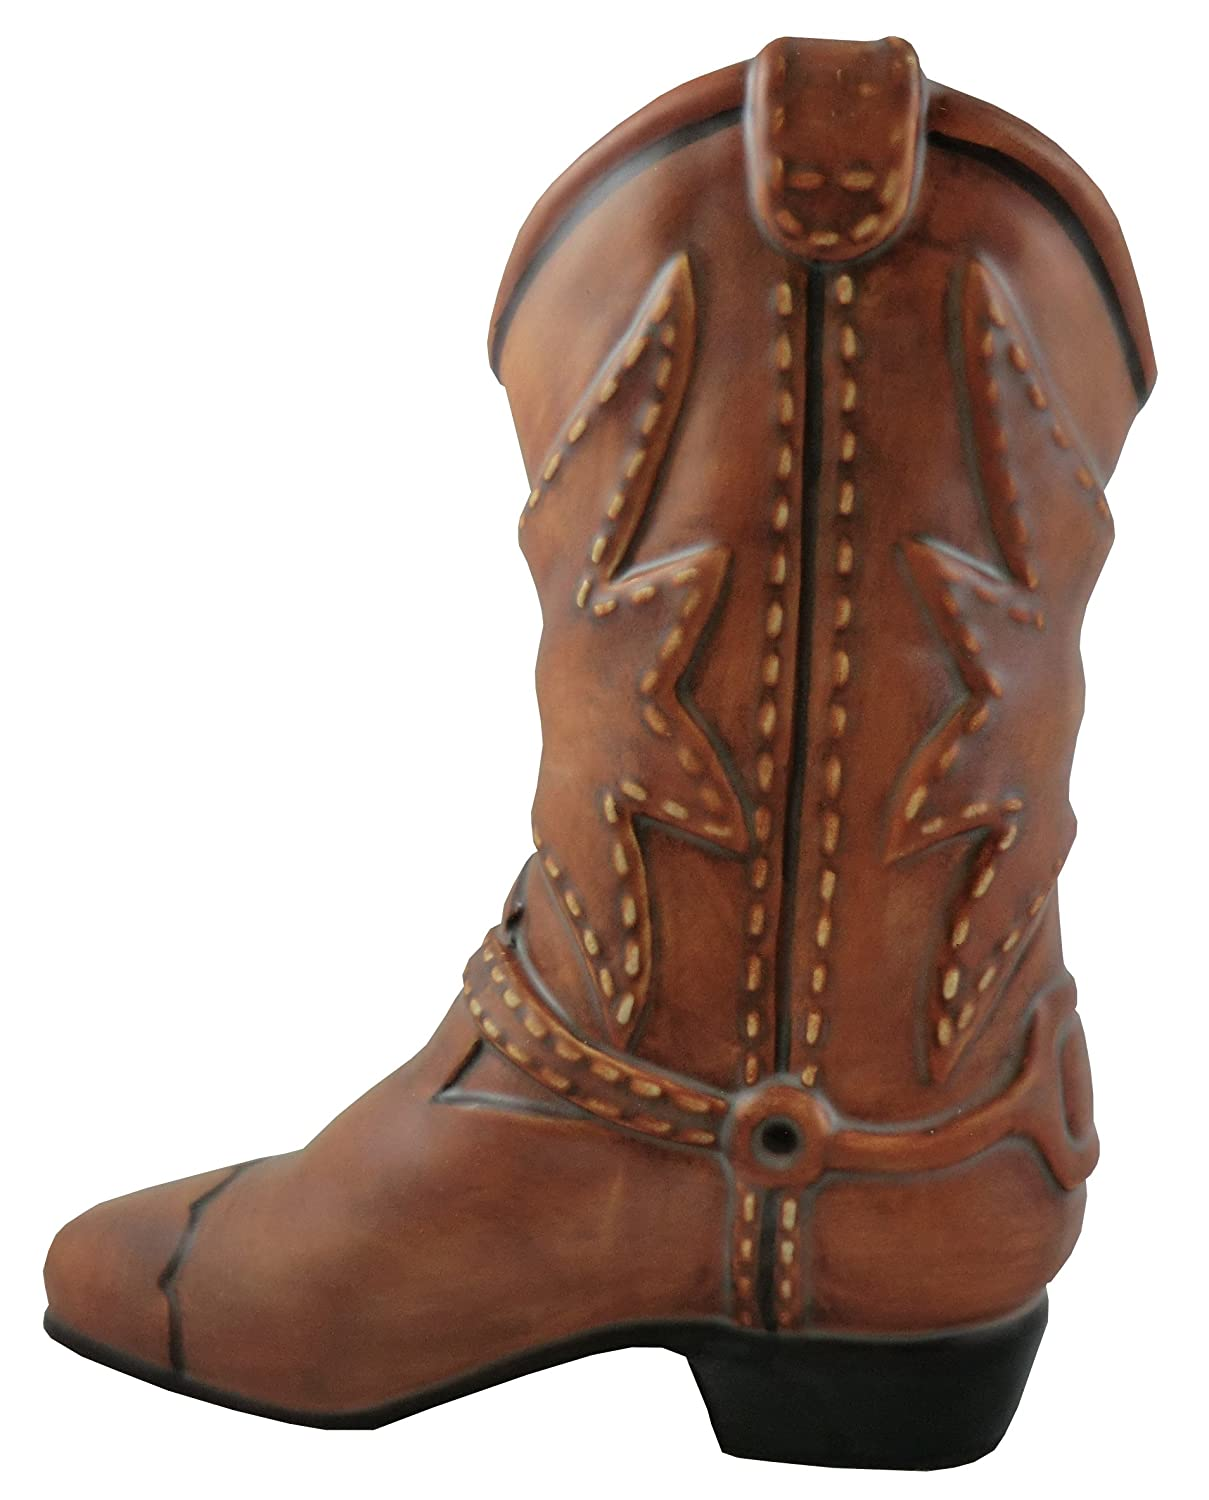 Amazon accents occasions ceramic cowboy boot planter or amazon accents occasions ceramic cowboy boot planter or flower arrangement vase 6 12 inch home kitchen reviewsmspy